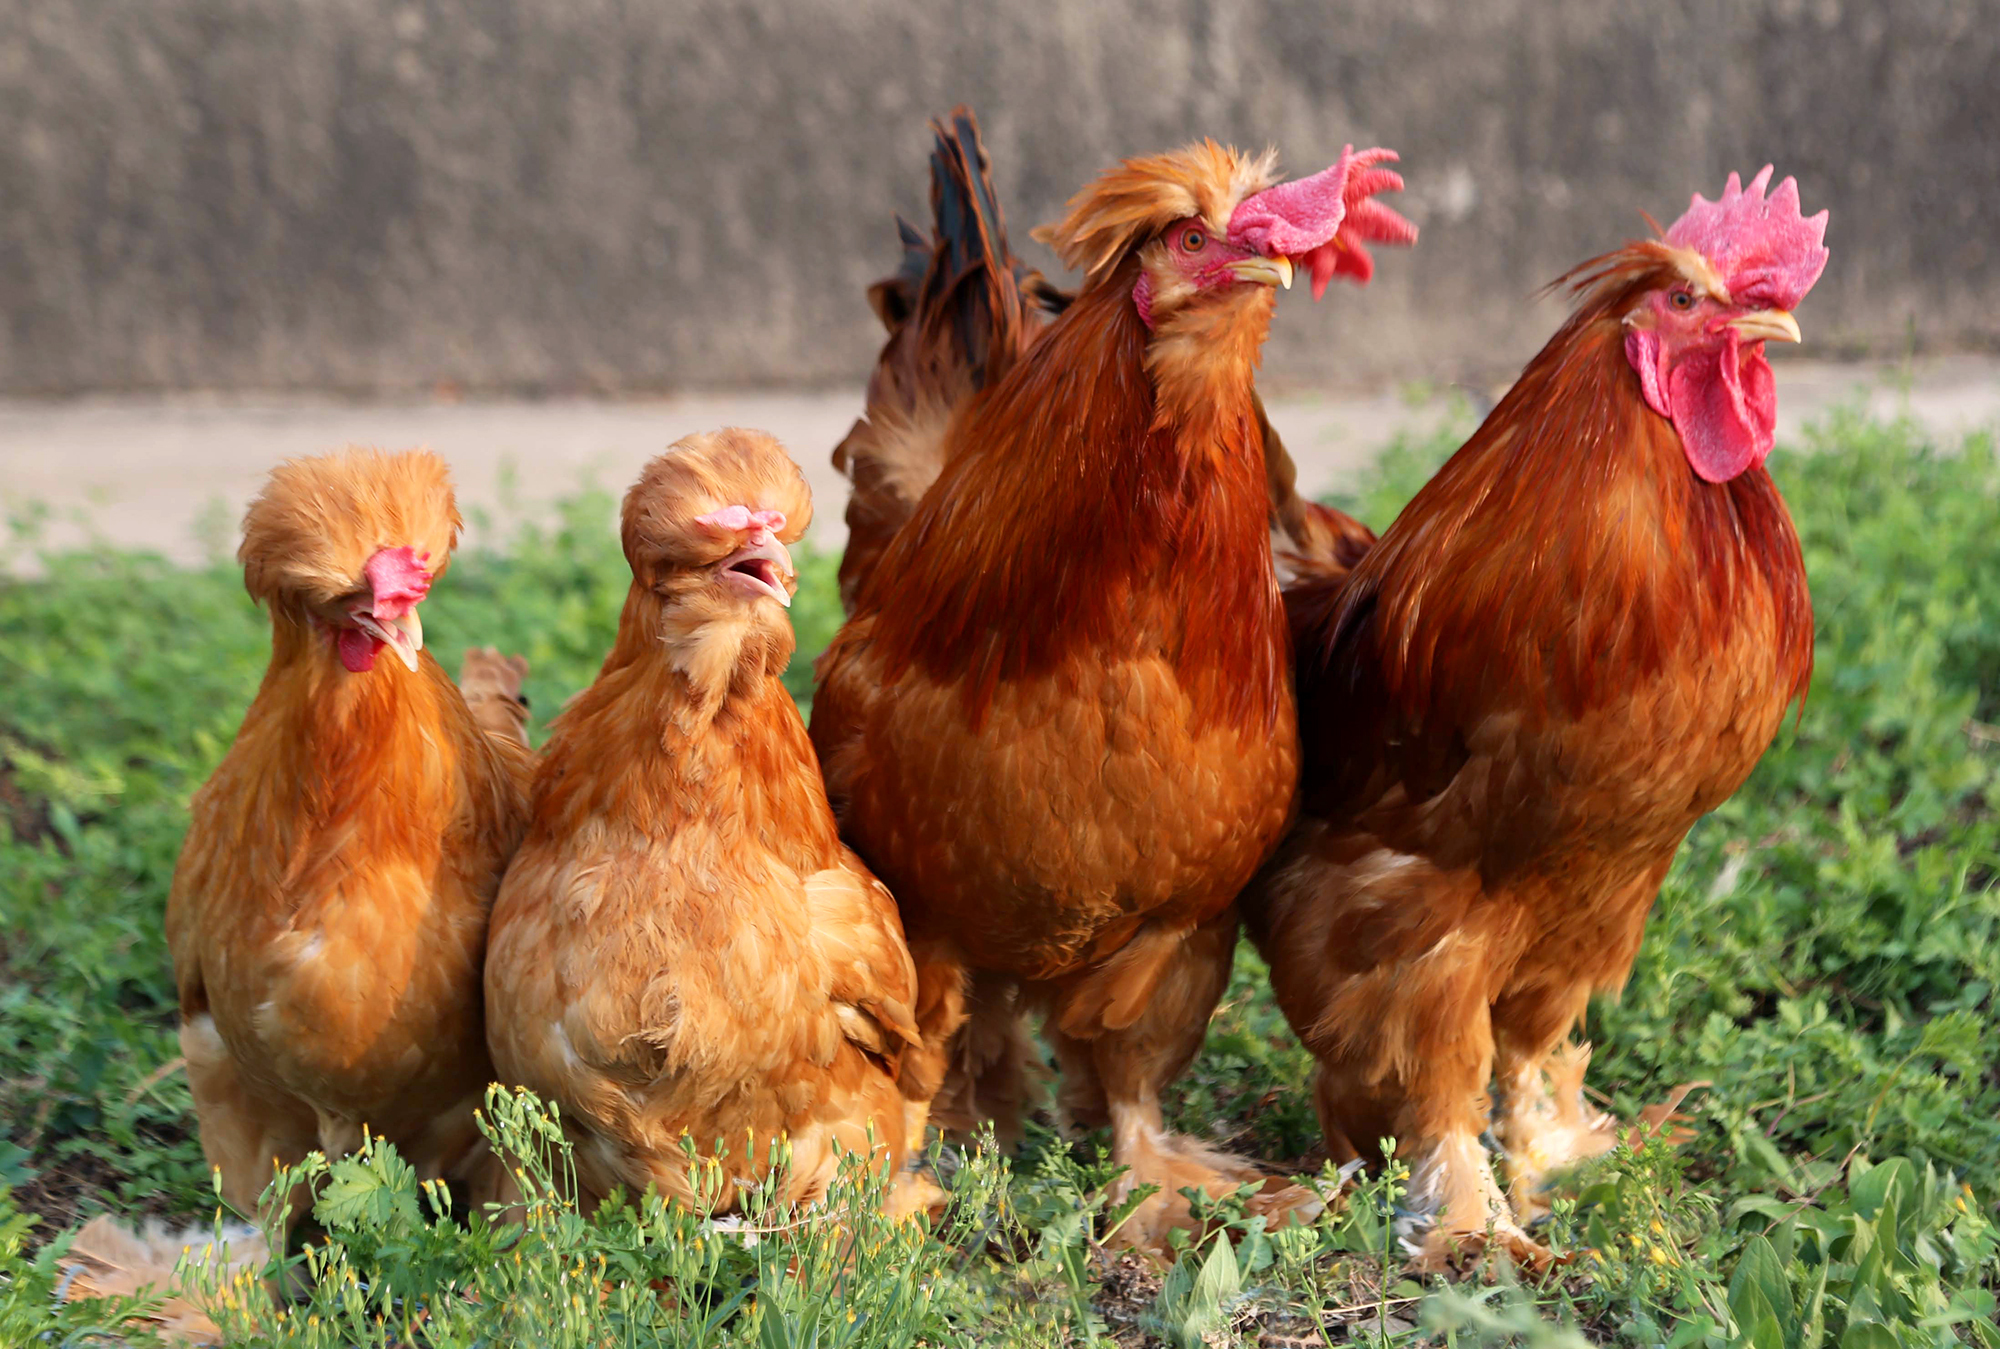 When you've got it, flaunt it: Beards can occur in various chicken breeds. The birds in the middle have them; the ones on the far left and right don't.